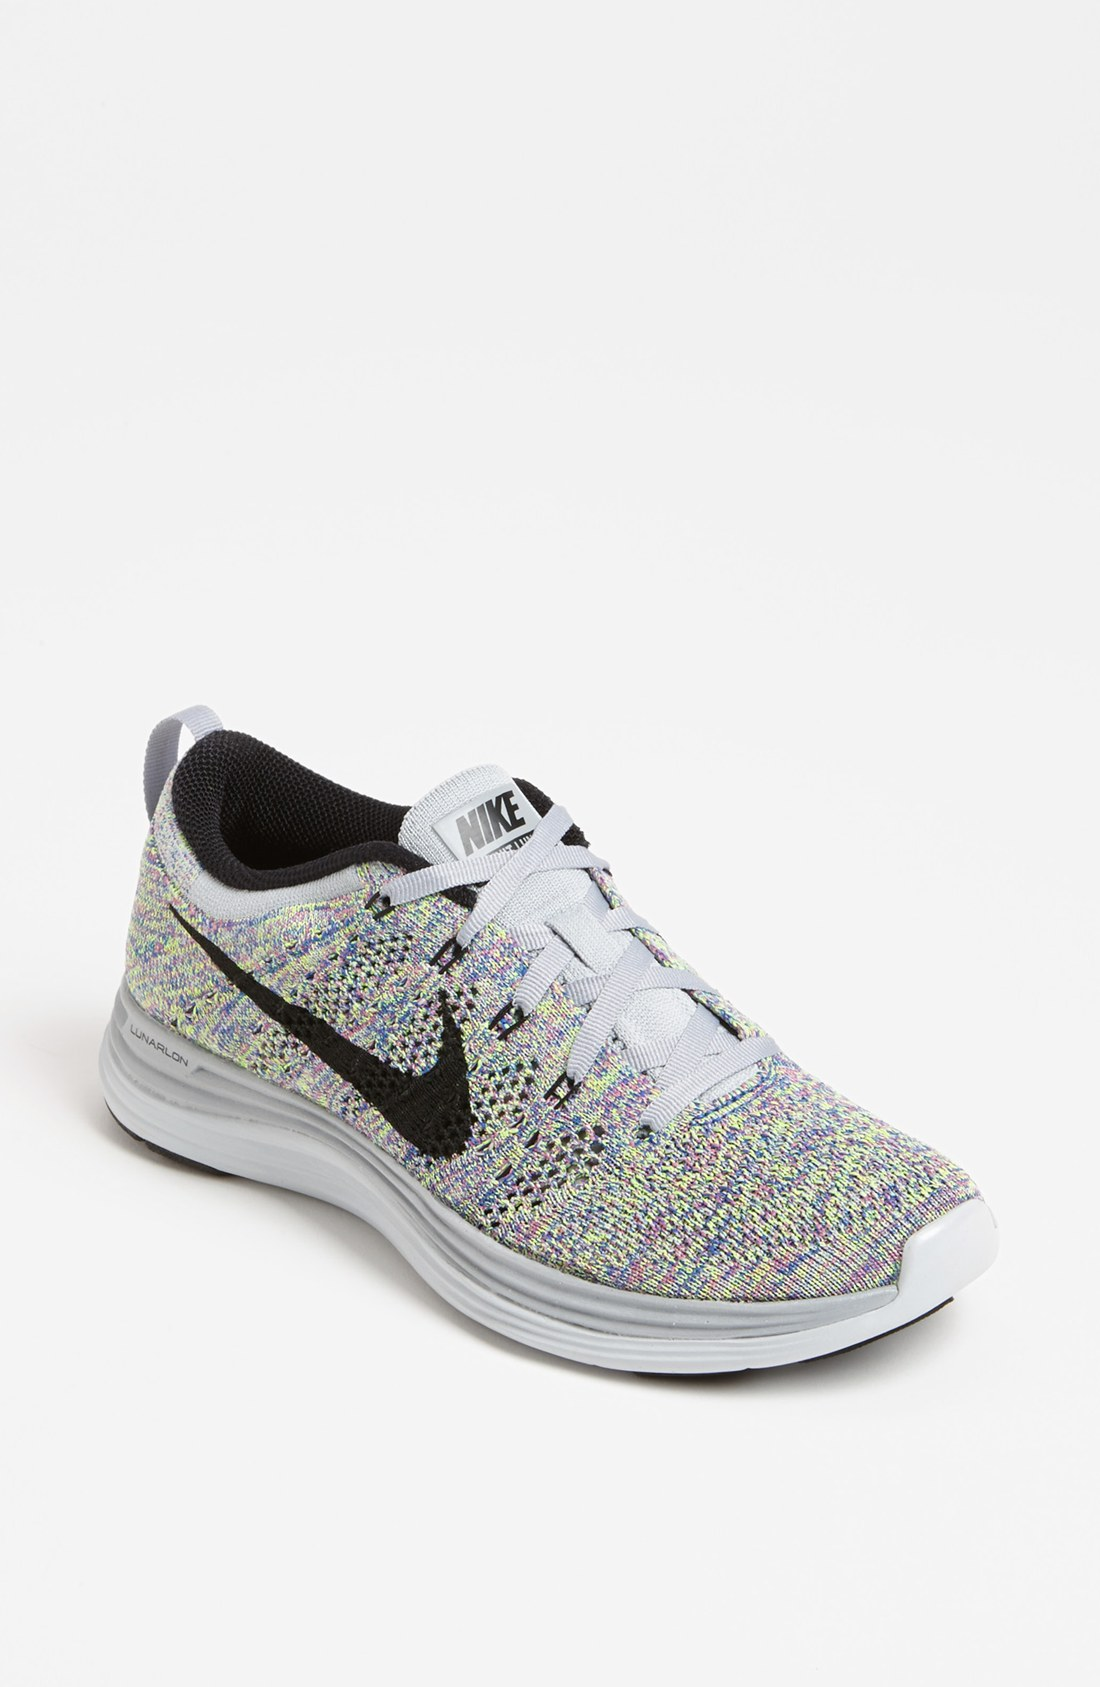 Excellent Nike Running Shoes 2013 Women  FOOTWEARPEDIA